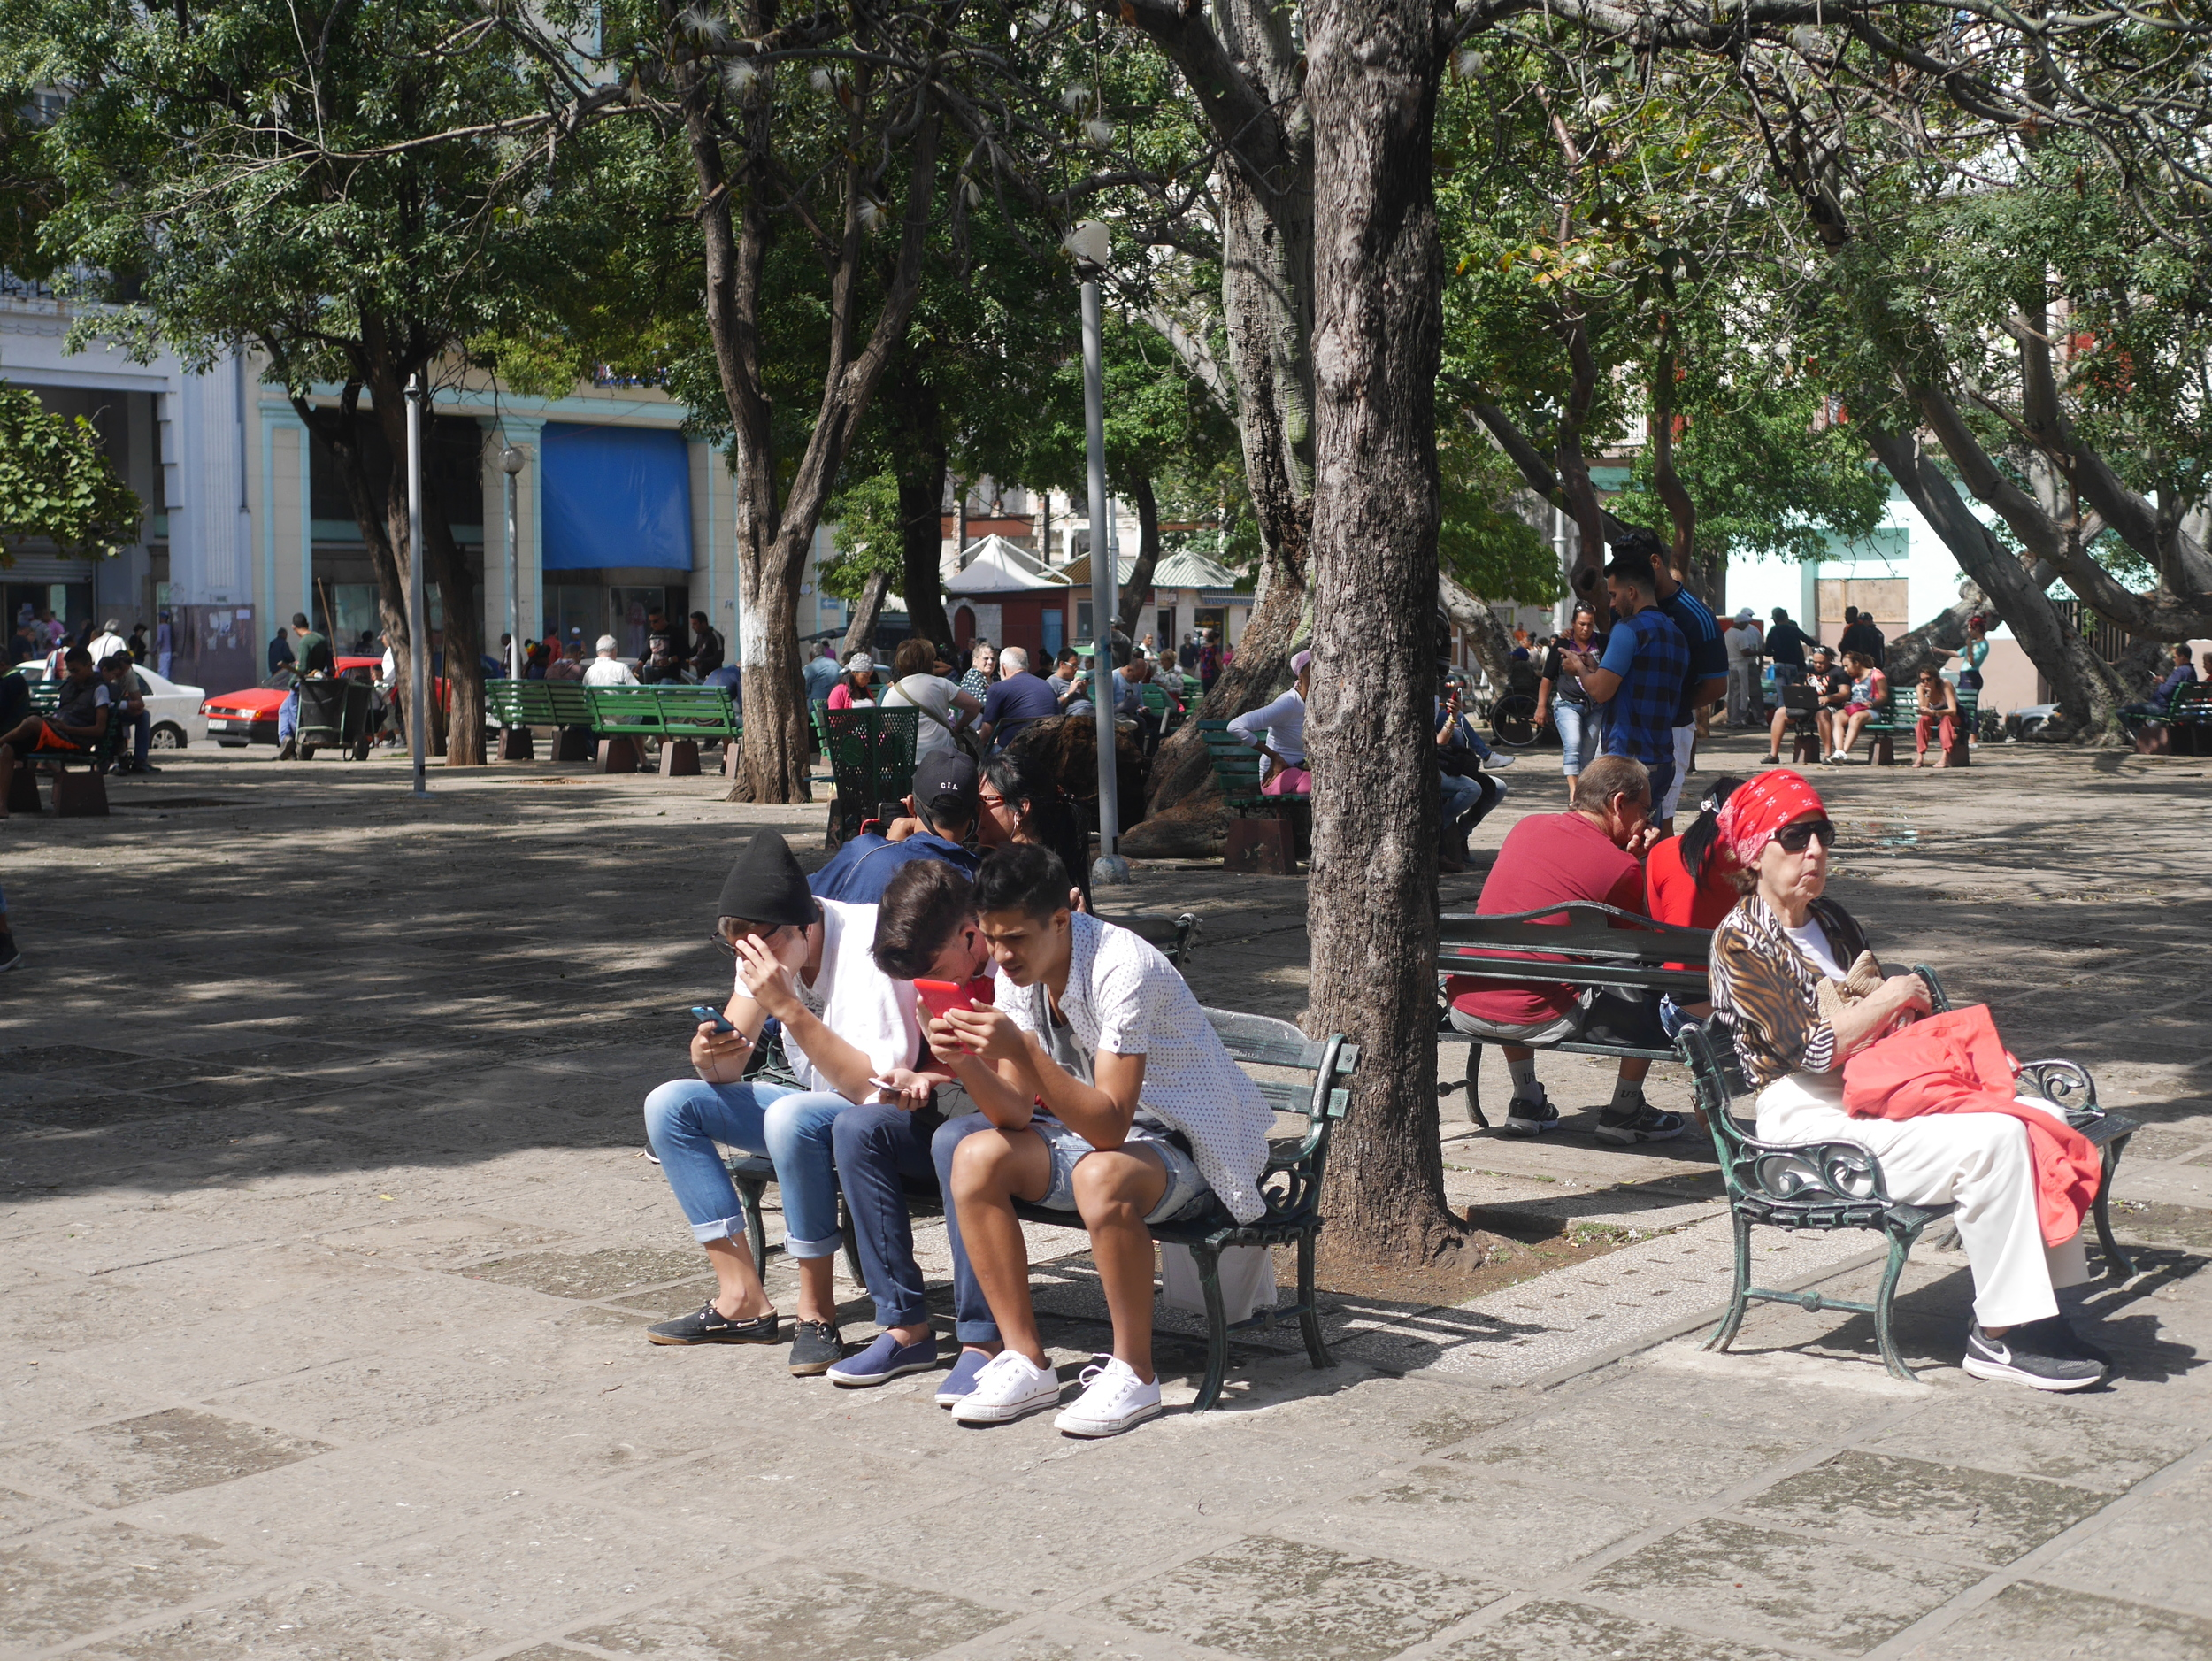 The only wi-fi available in Cuba is at a central park in town. You'll know you've arrived when you see everybody on their phones. One hour of internet costs $2 and at least an hour wait in a line... or $3 illegally from a dude on the street.